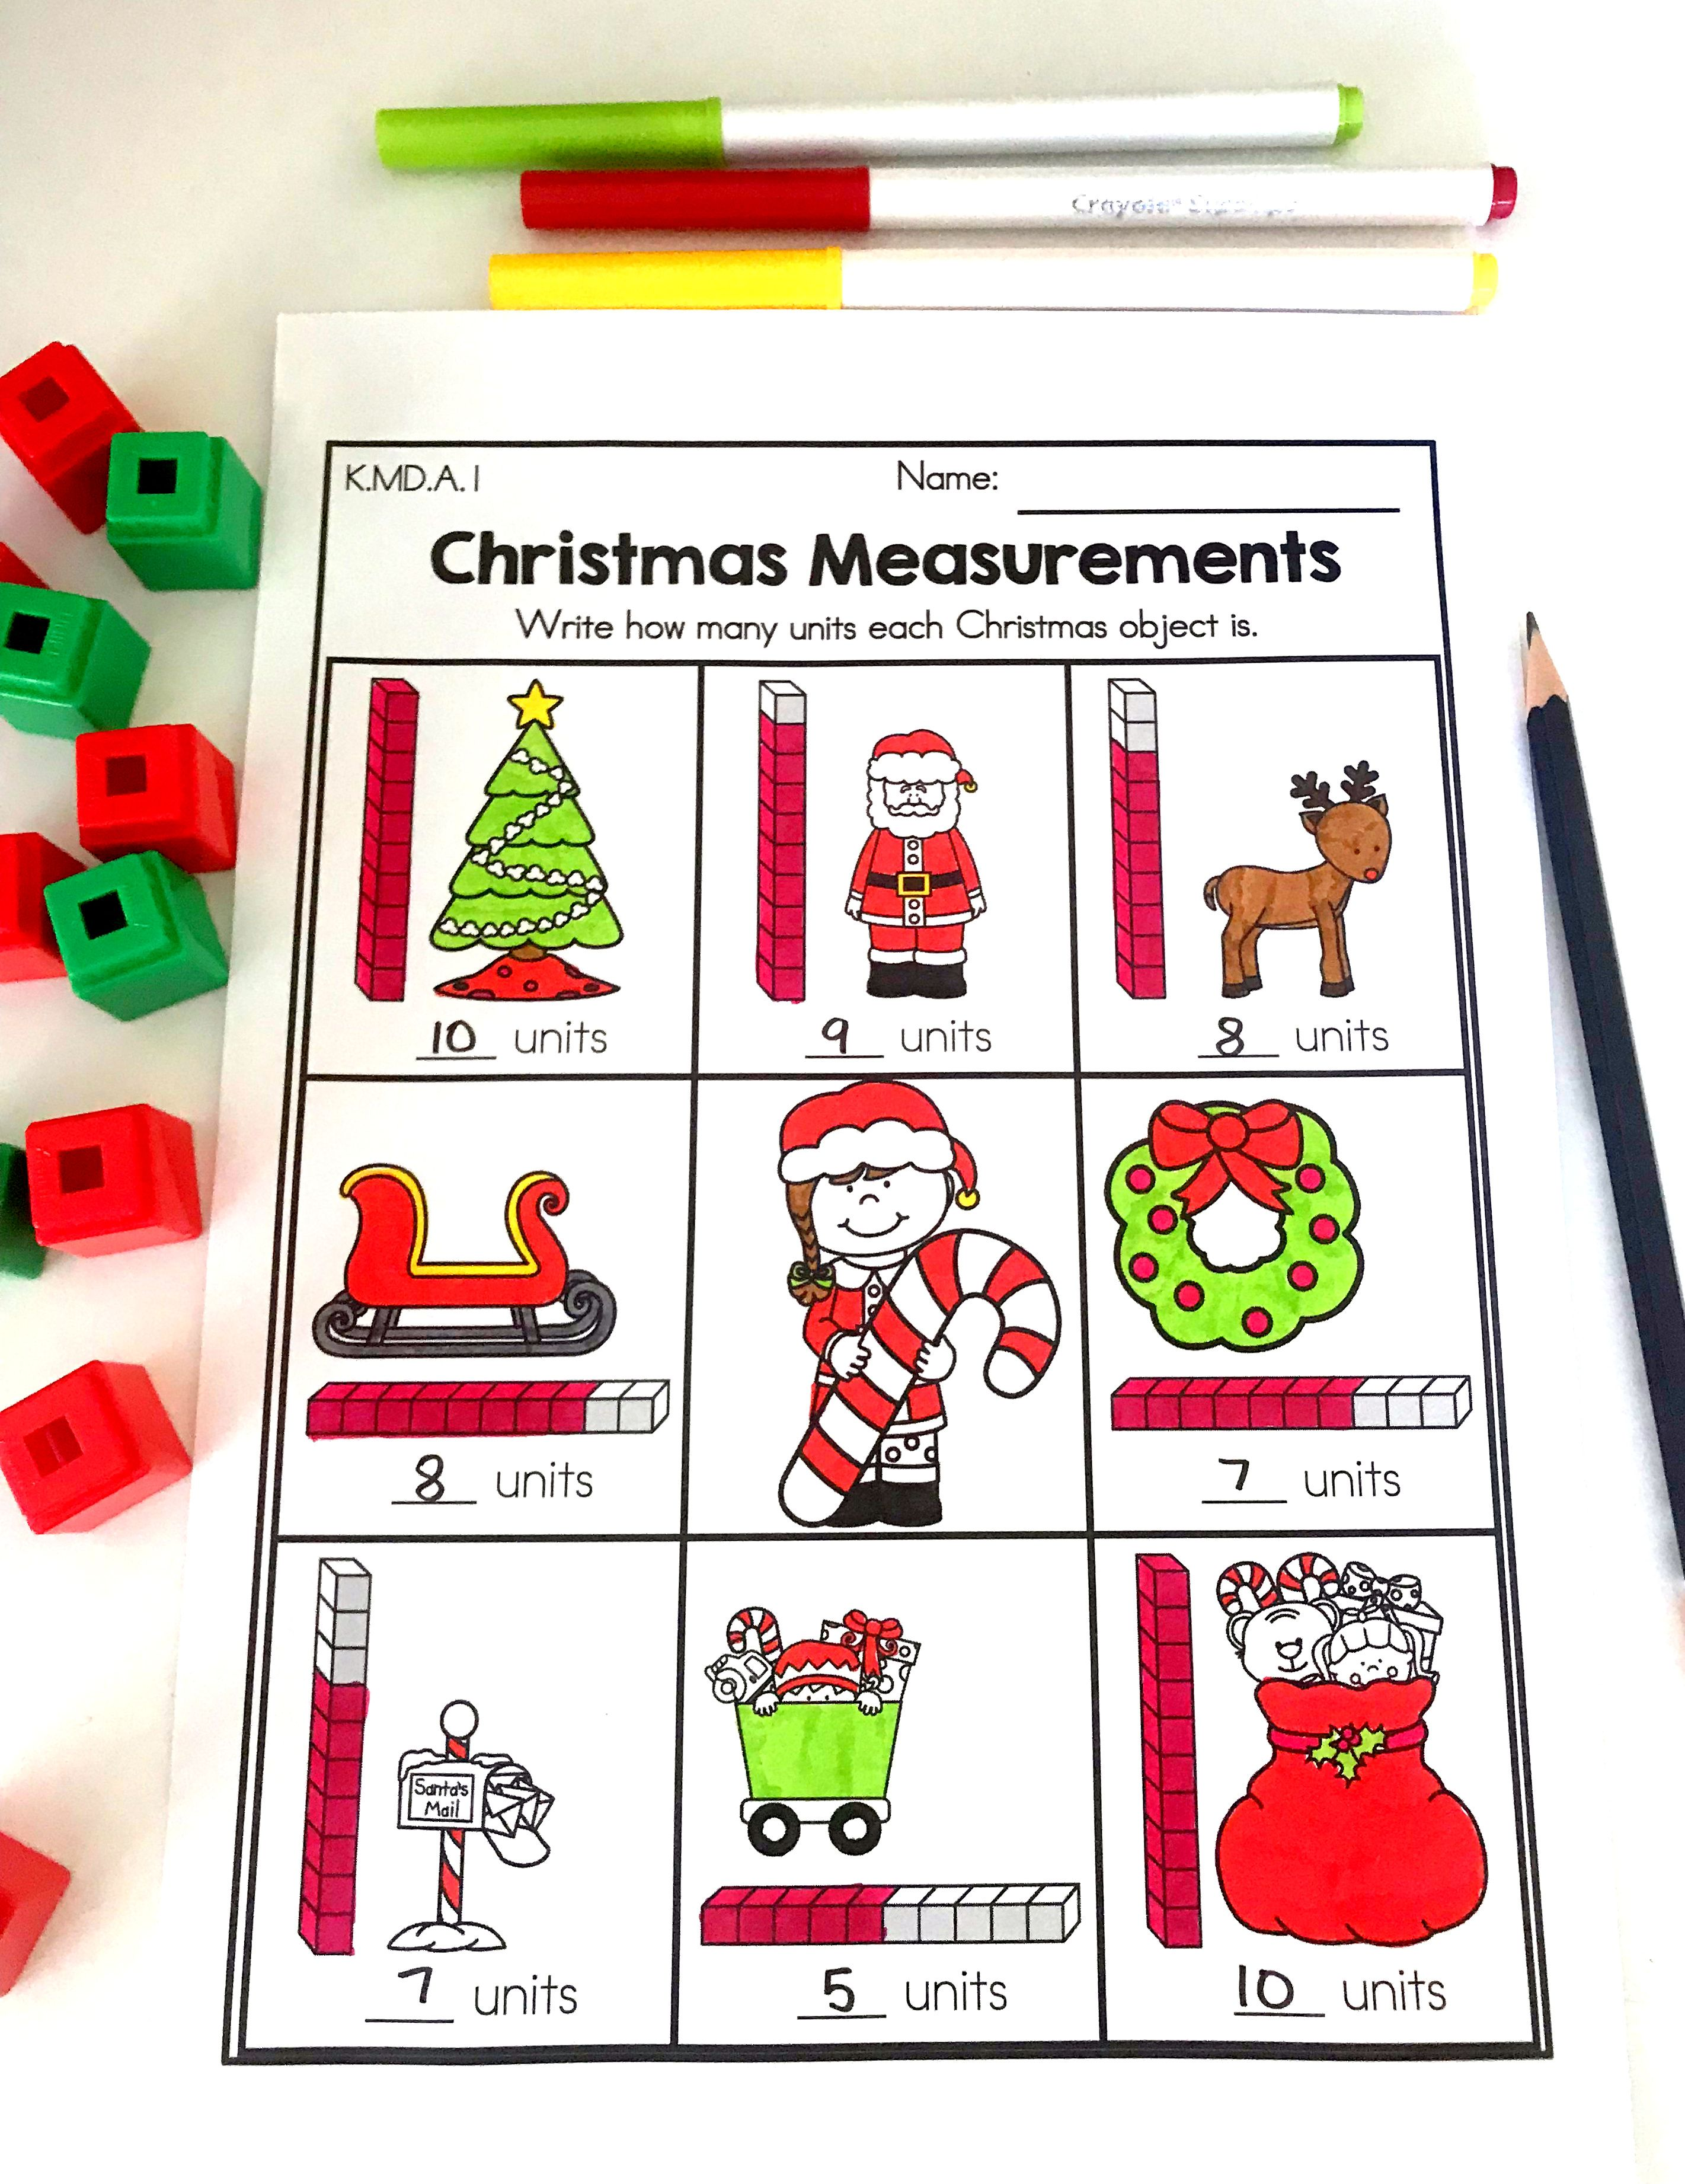 Practice Non Standard Measurement With This Christmas